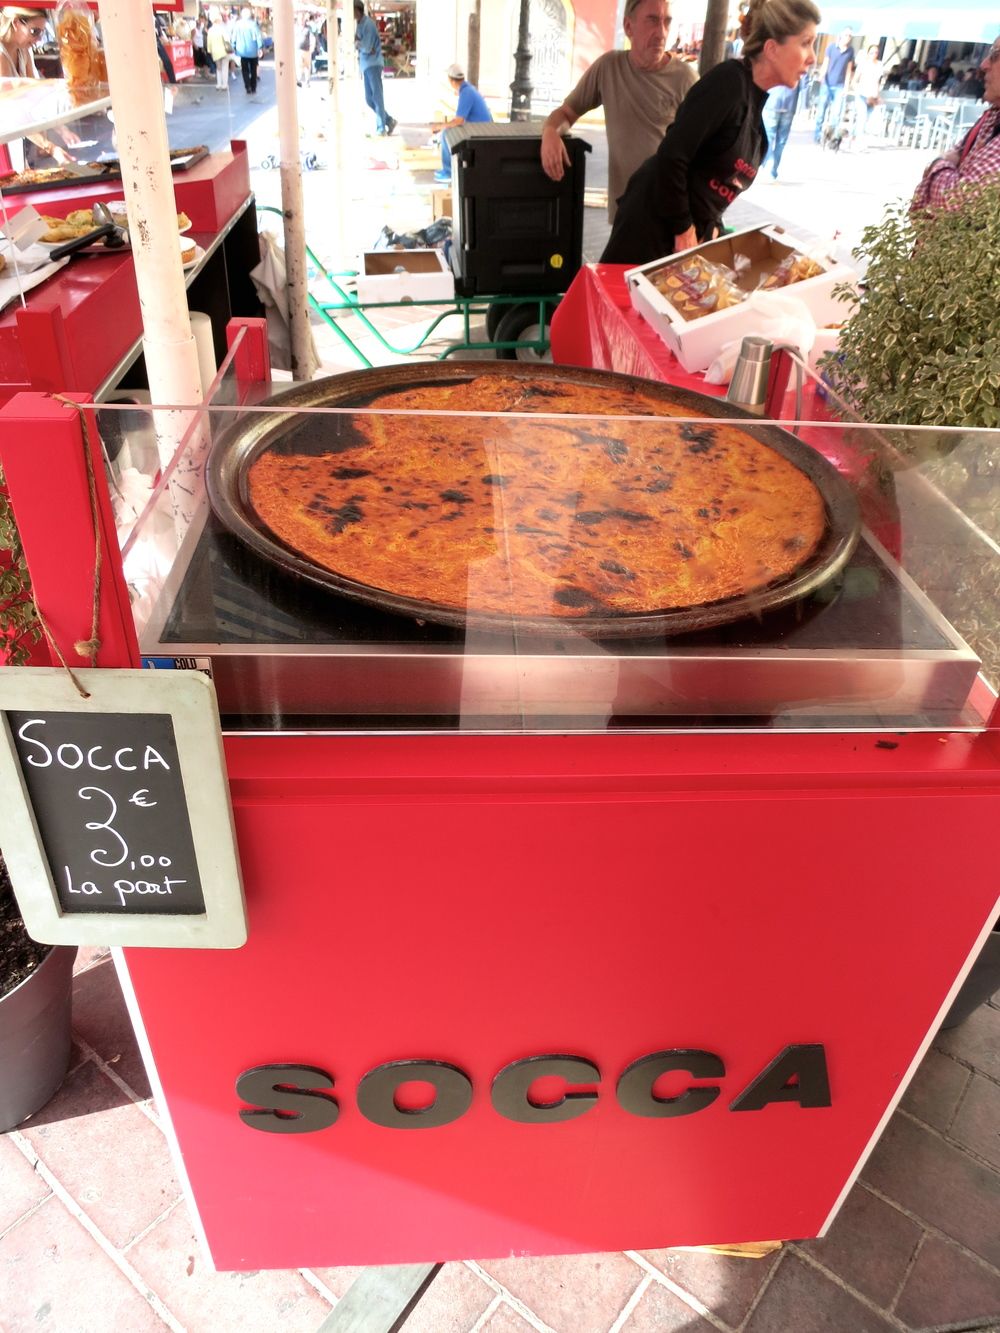 A gluten-free street food snack?! All over it. The Socca was delicious and a huge portion for 3 Euro. © 2014 Gail Jessen